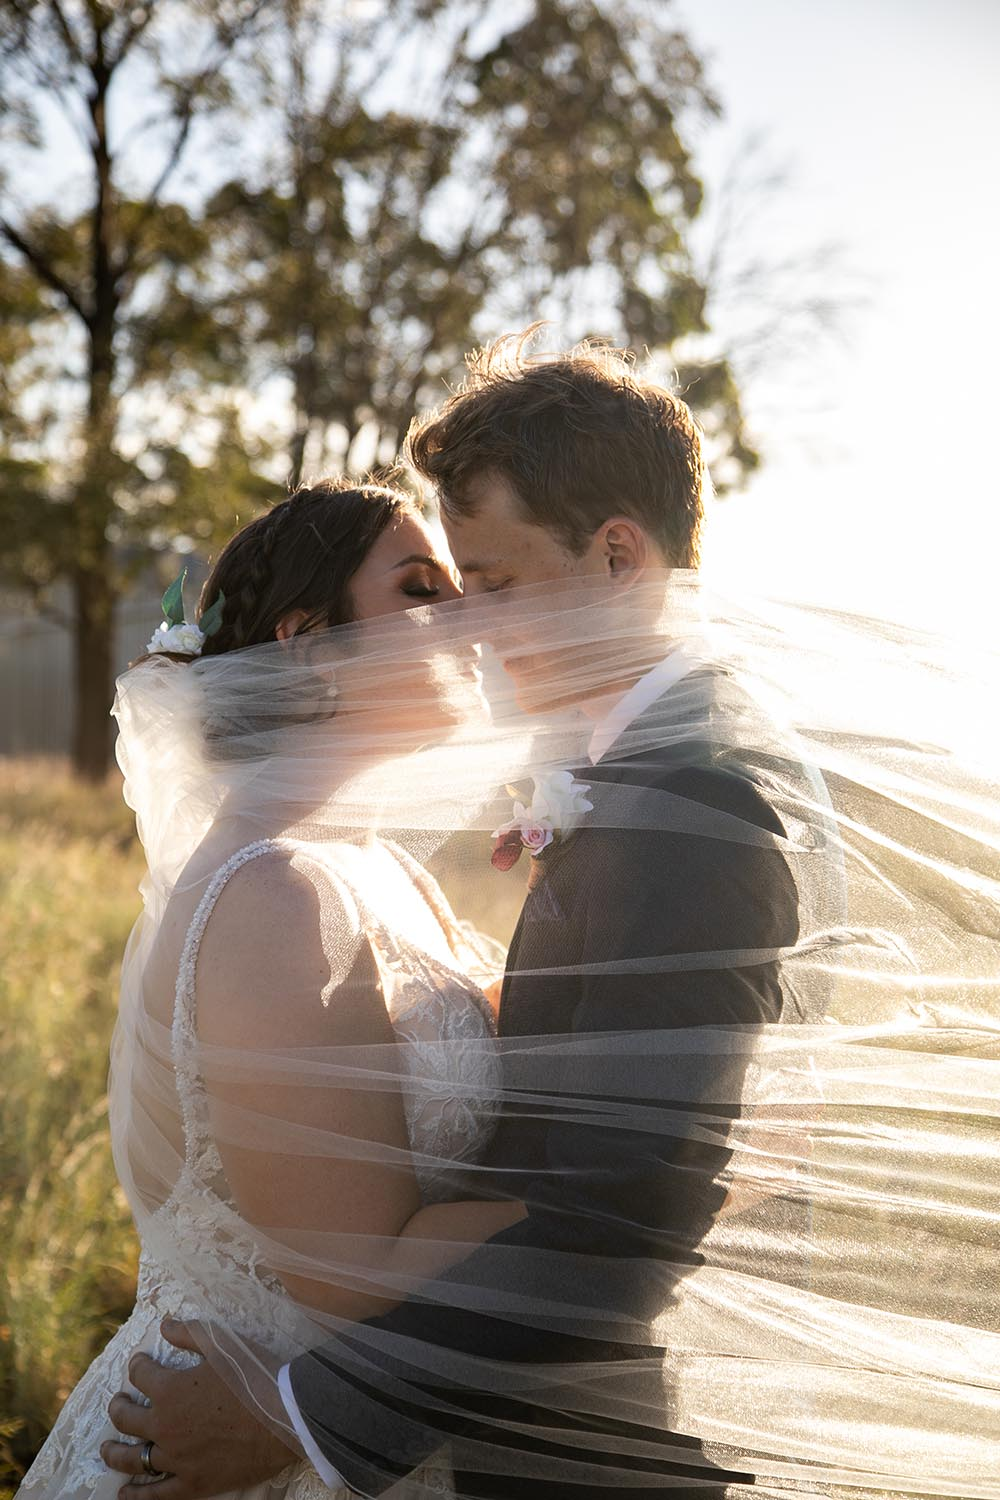 Wedding Photography - Wind blowing Veil